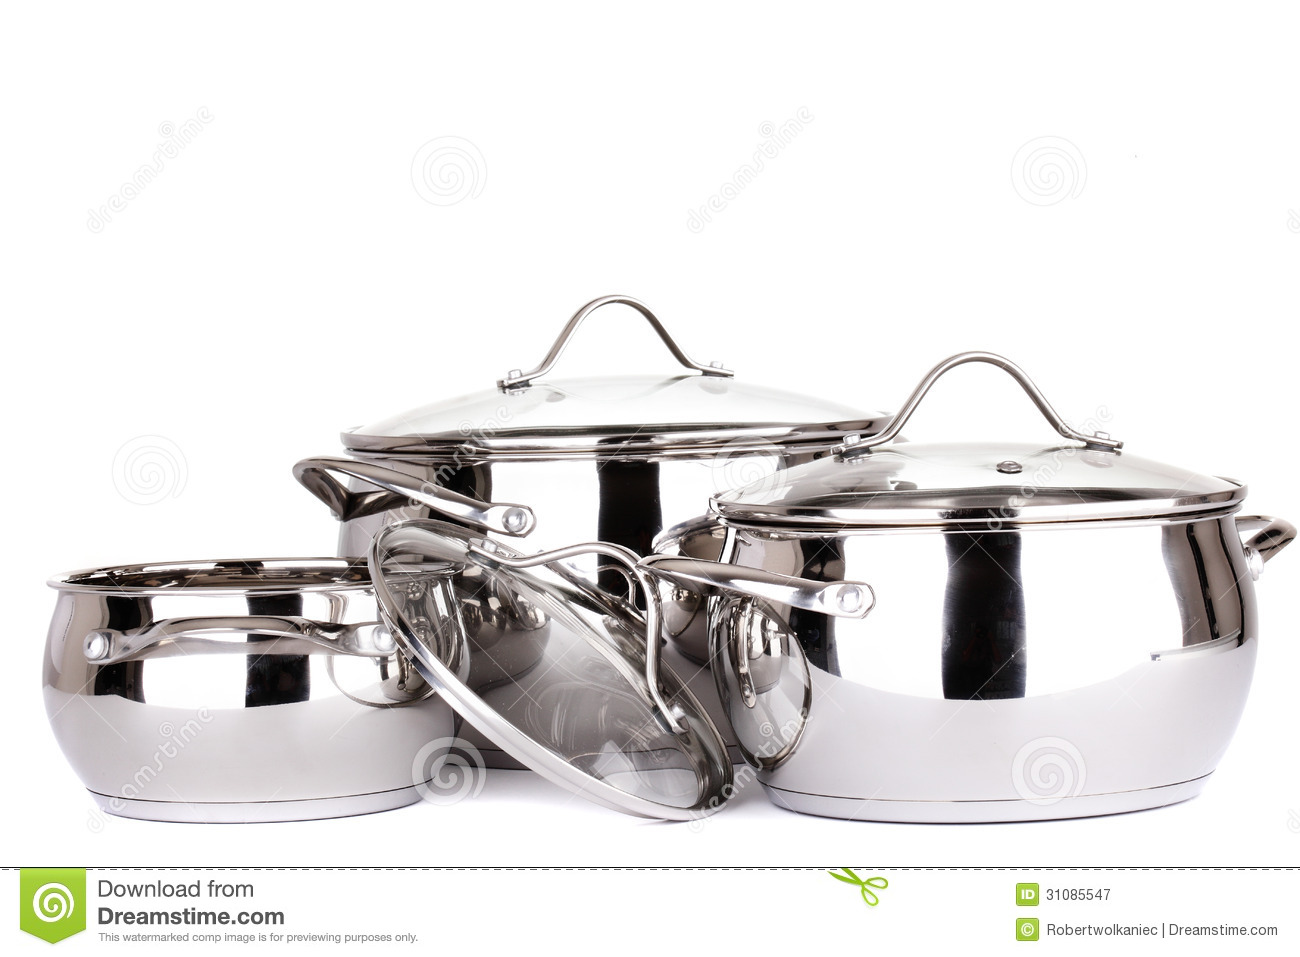 set of pots and pans royalty free stock photography image 31085547. Black Bedroom Furniture Sets. Home Design Ideas